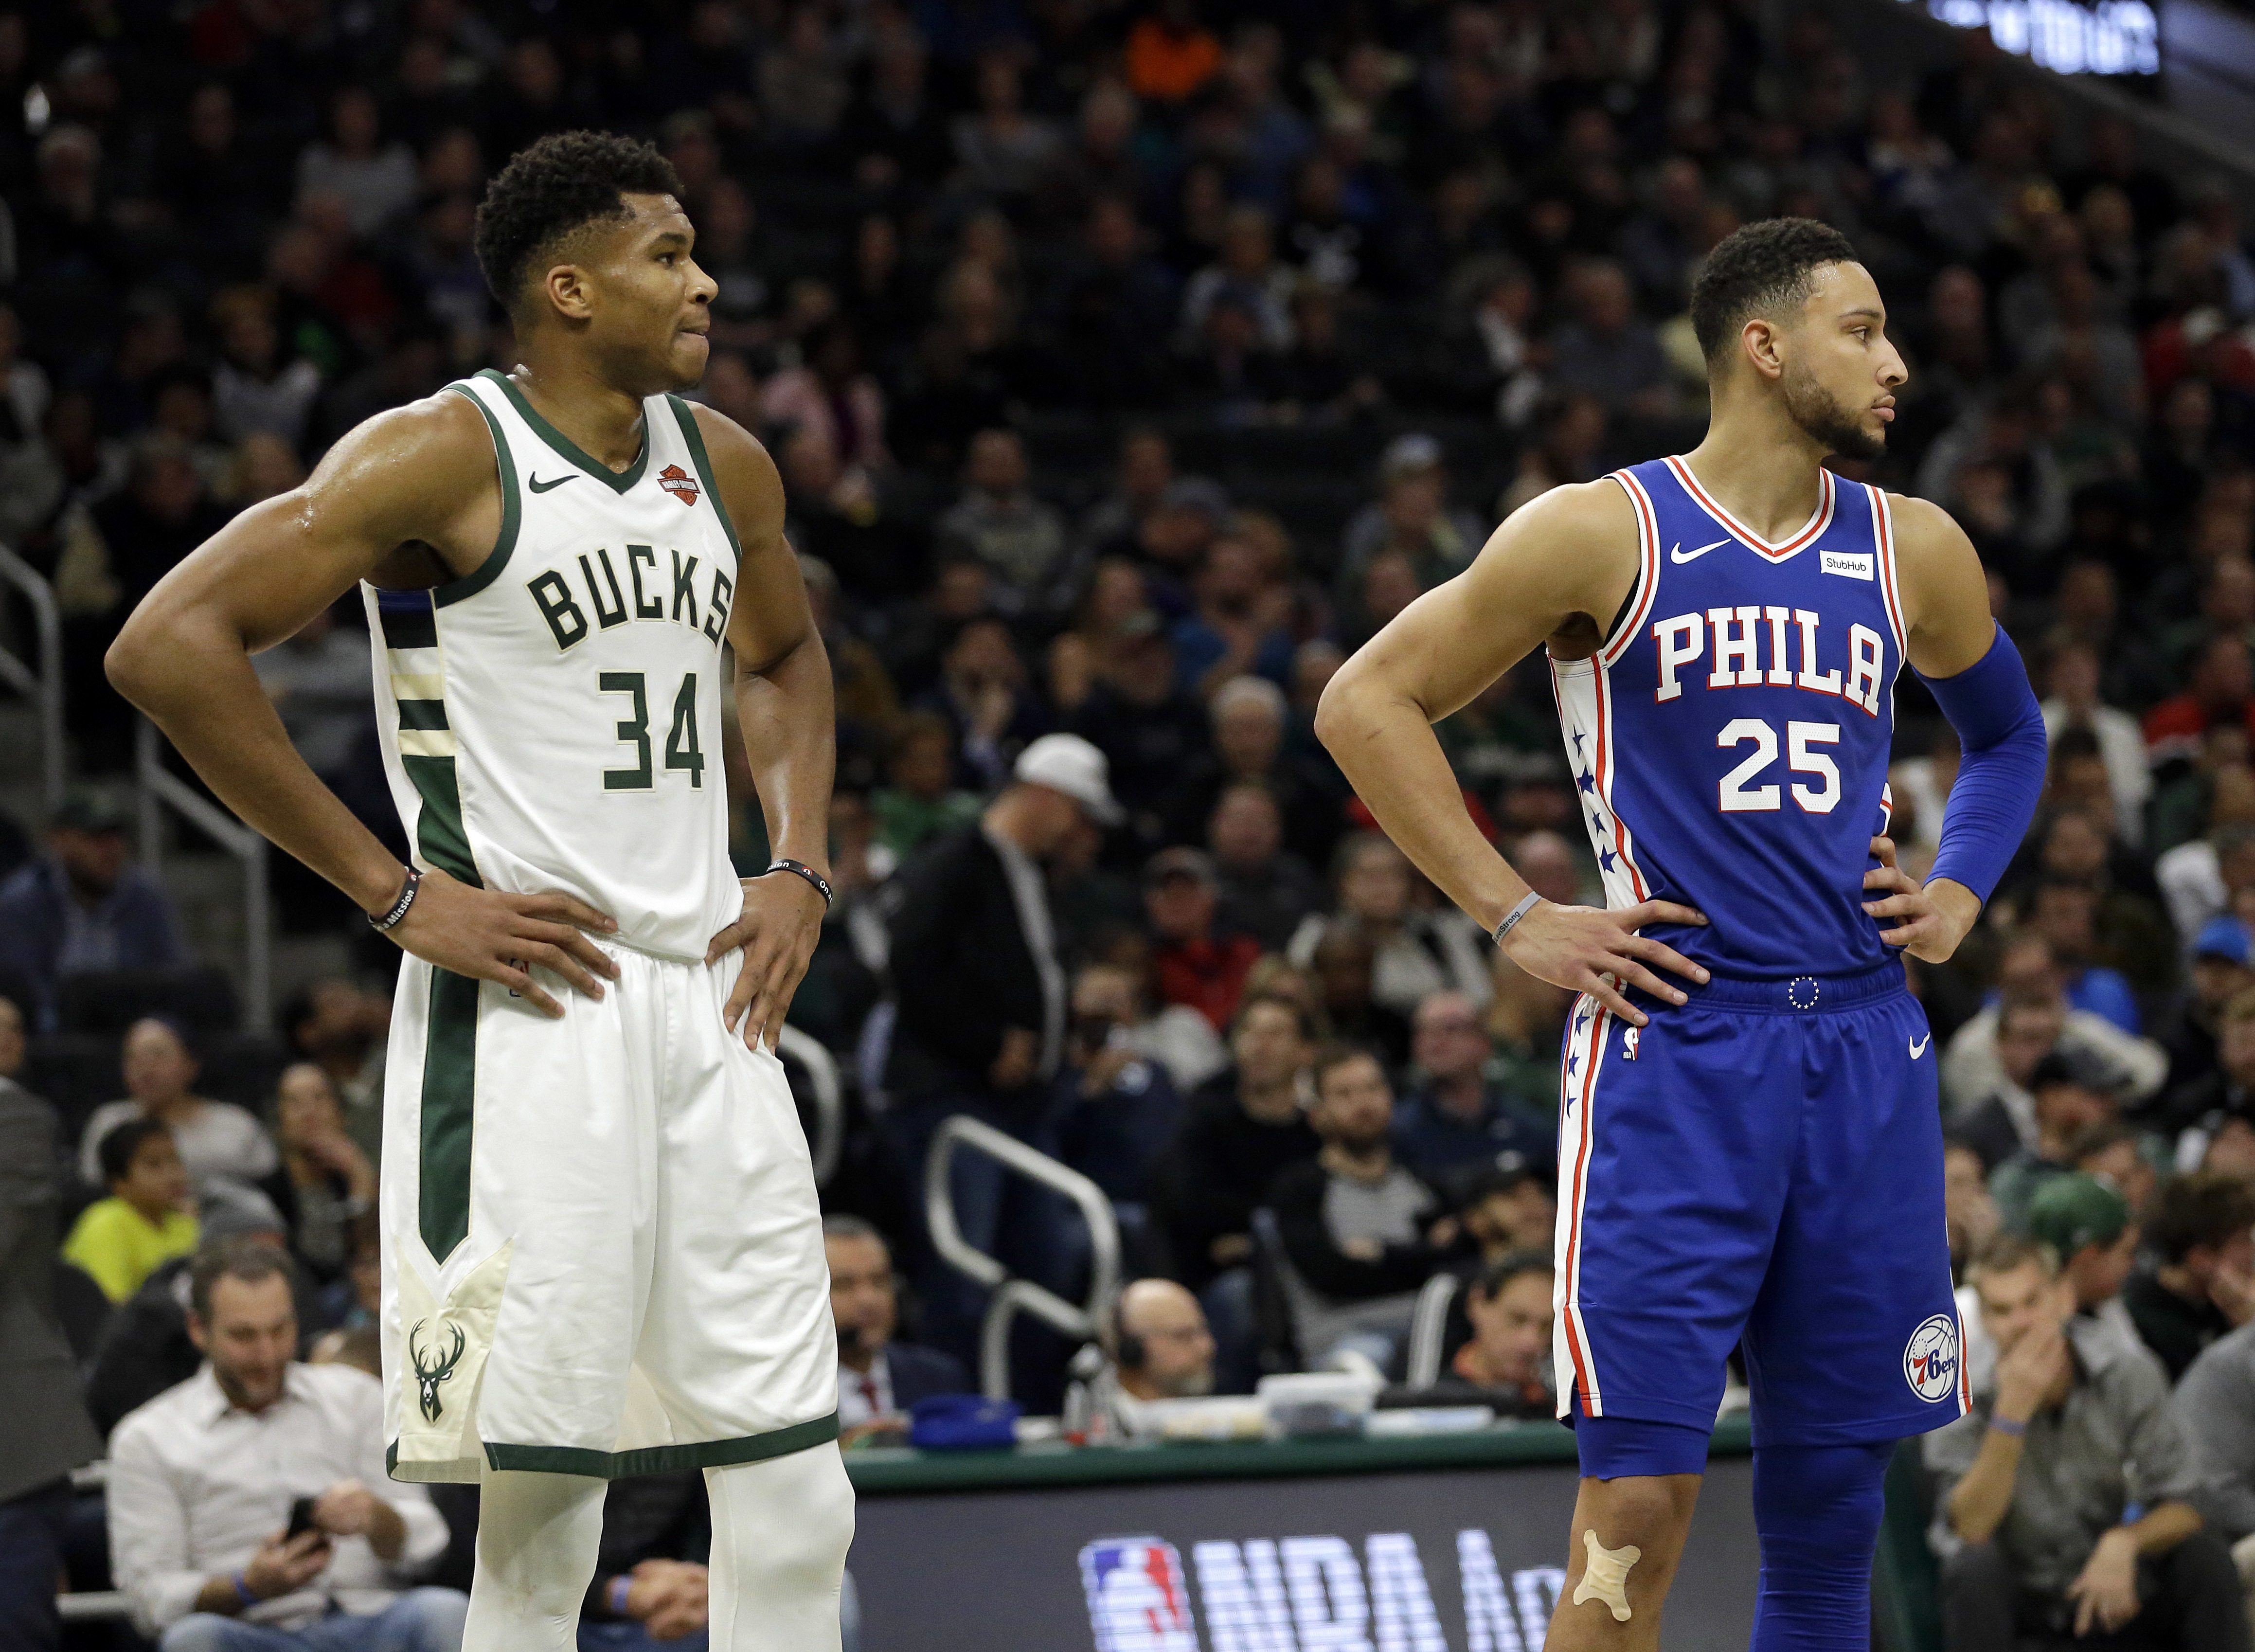 Bucks star Giannis Antetokounmpo and Sixers point guard Ben Simmons during Wednesday´s game.